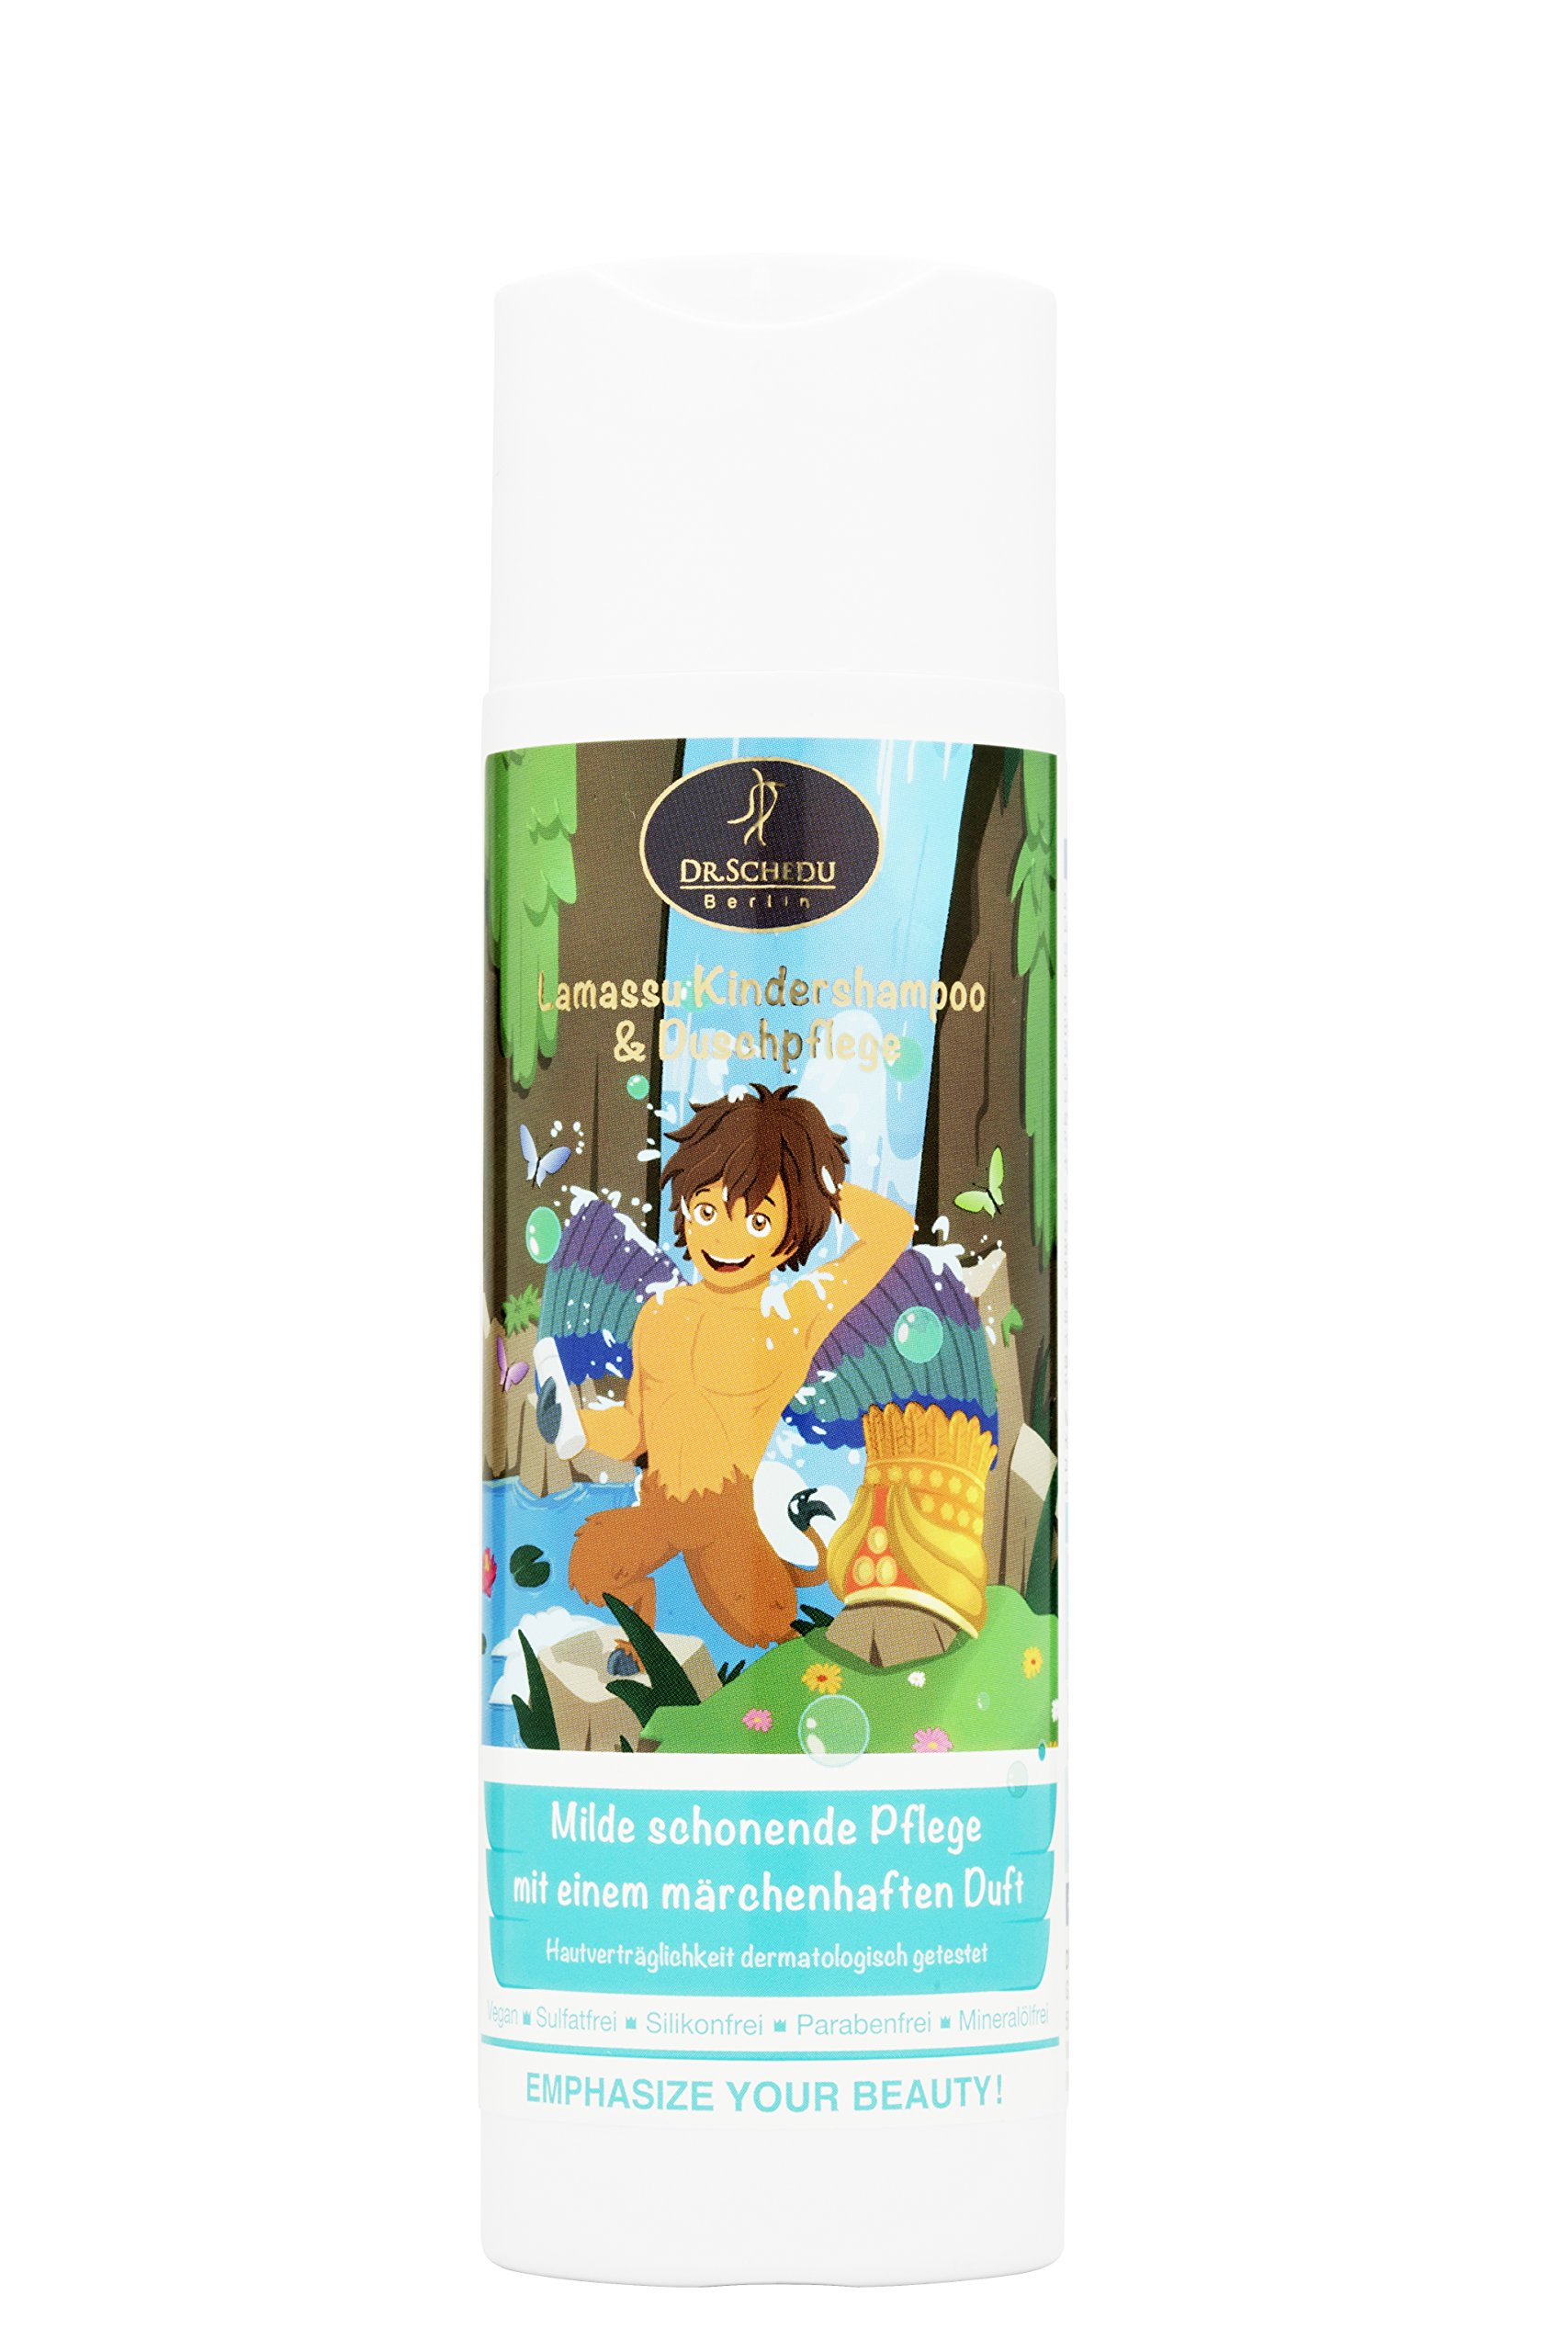 Dr. Schedu Berlin Lamassu Shampoo and Body Wash 200 ml. Vergan, Free of Silicone, Mineral Oils, parabens and colorings. with Broccoli Oil, Aloe Vera, Jojoba Oil and Pantheno